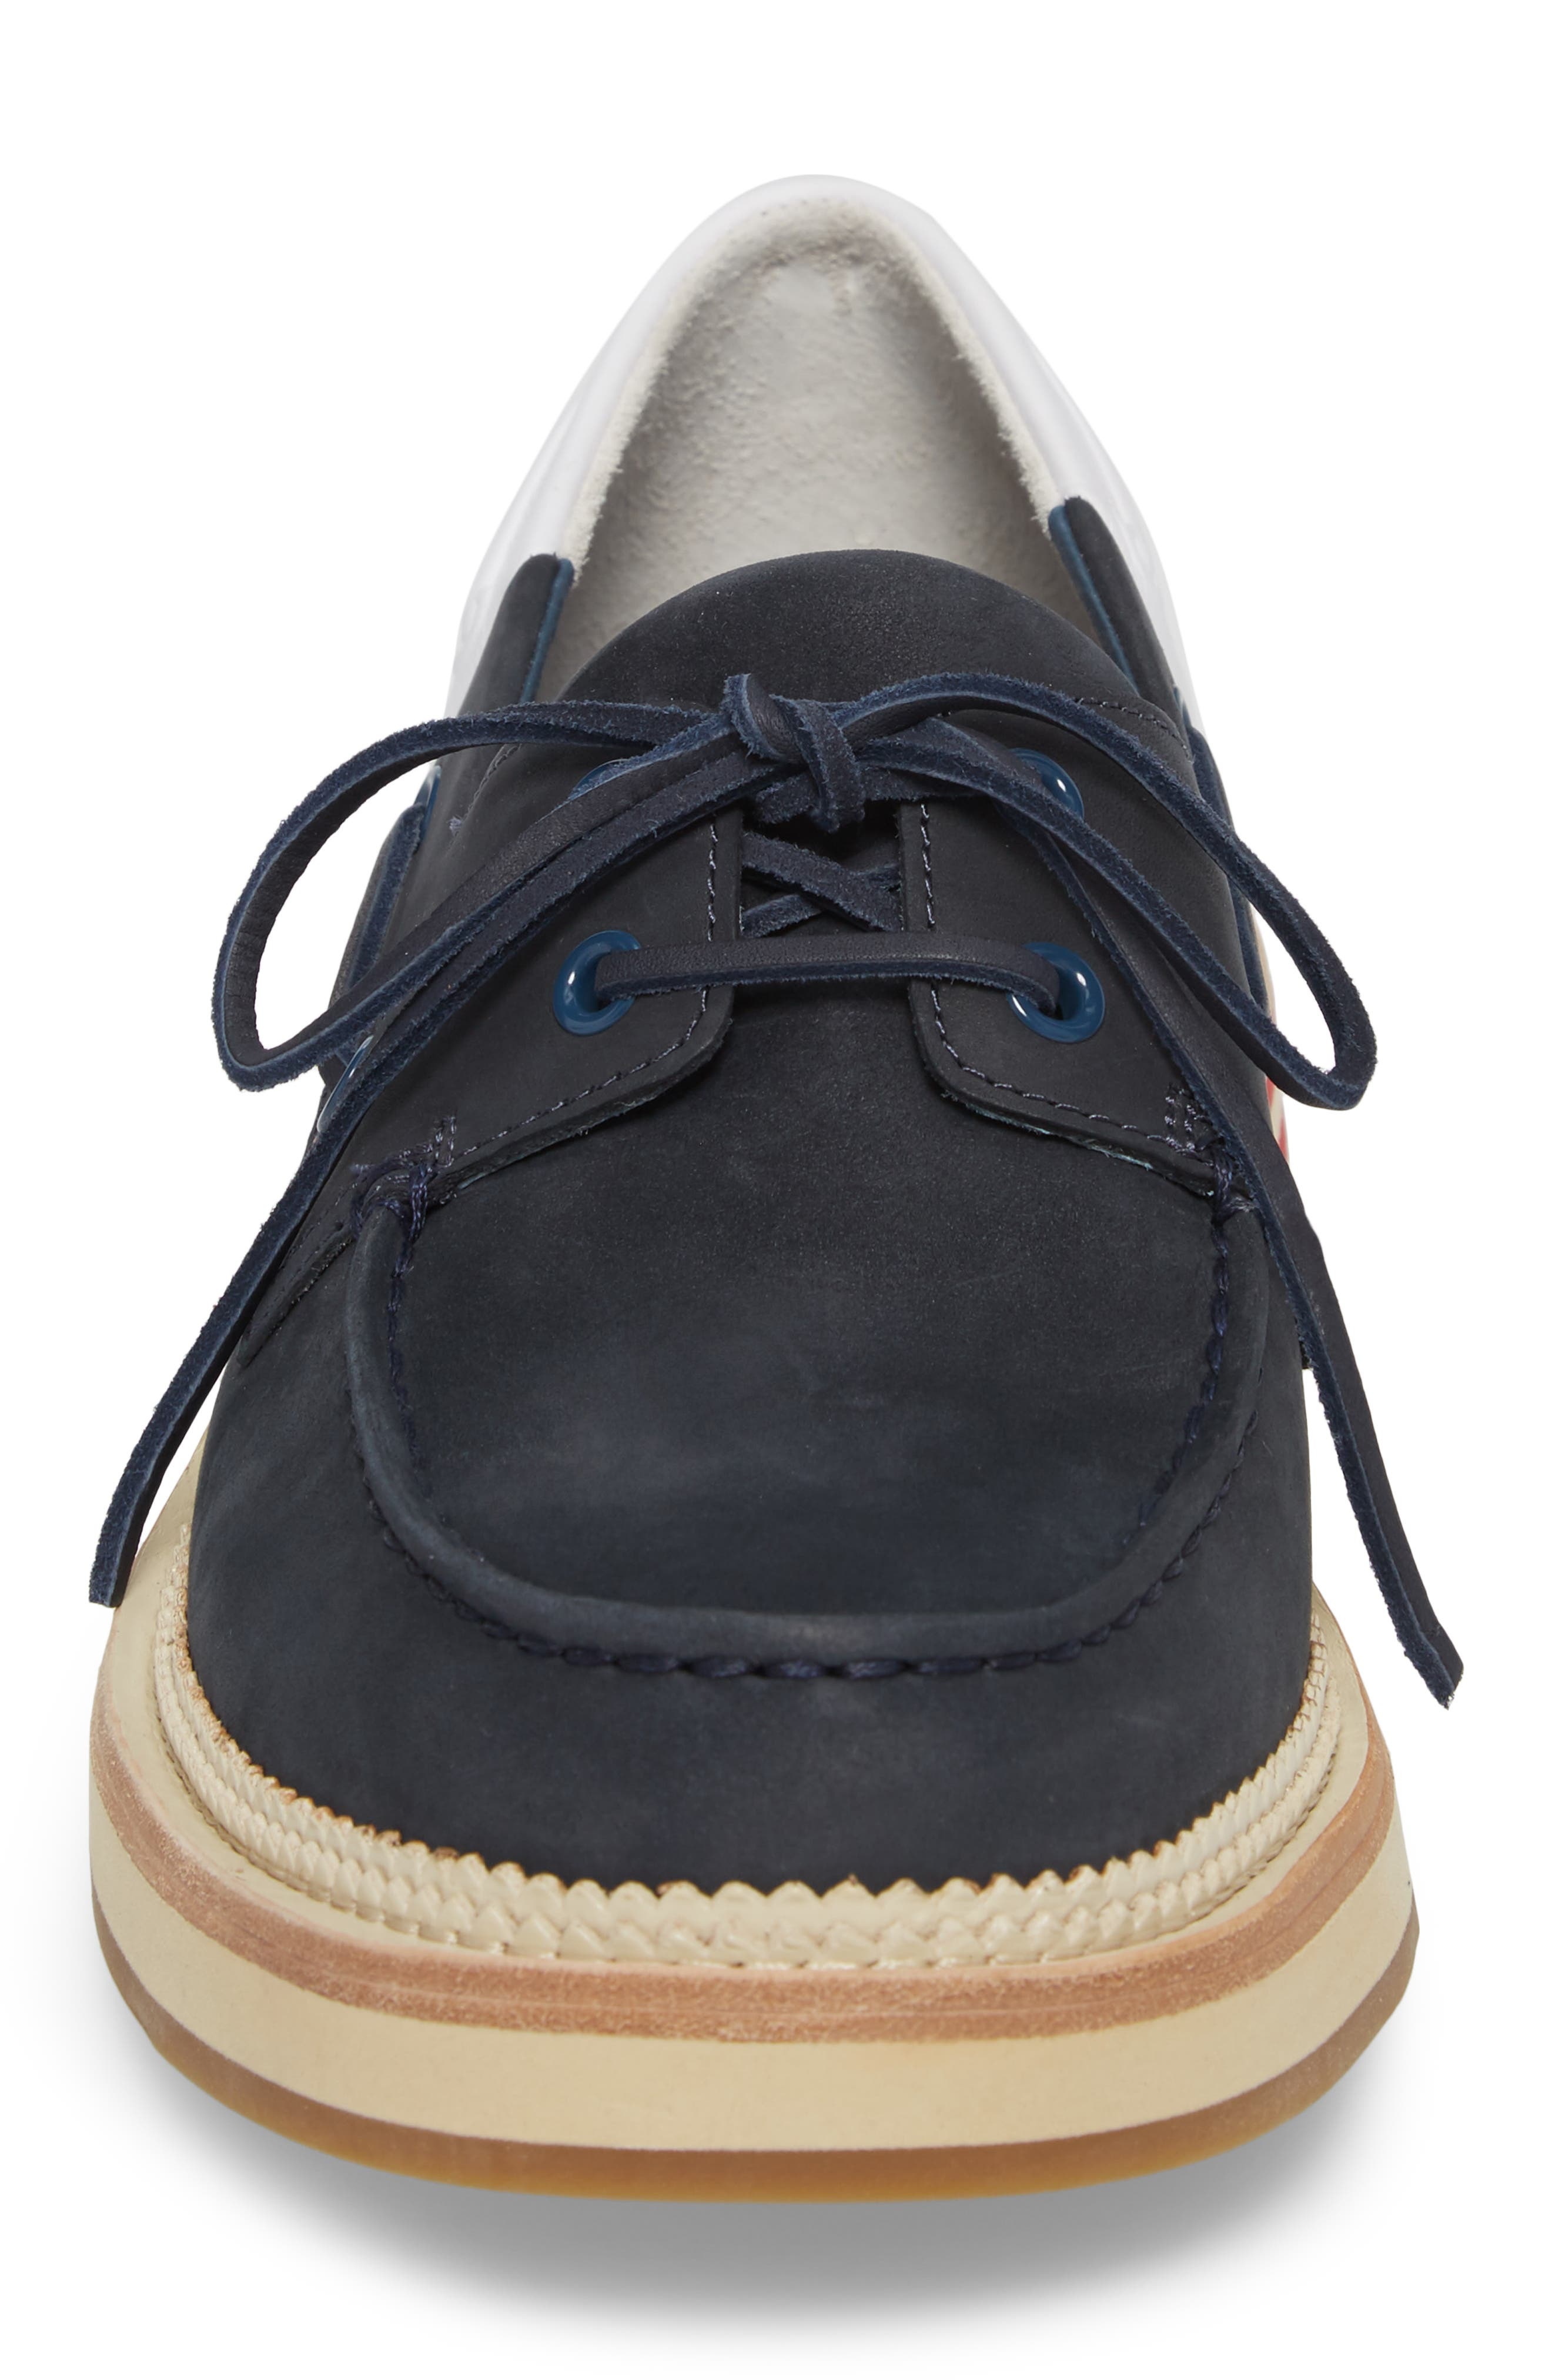 Cloud Colorblocked Boat Shoe,                             Alternate thumbnail 4, color,                             Navy/ White